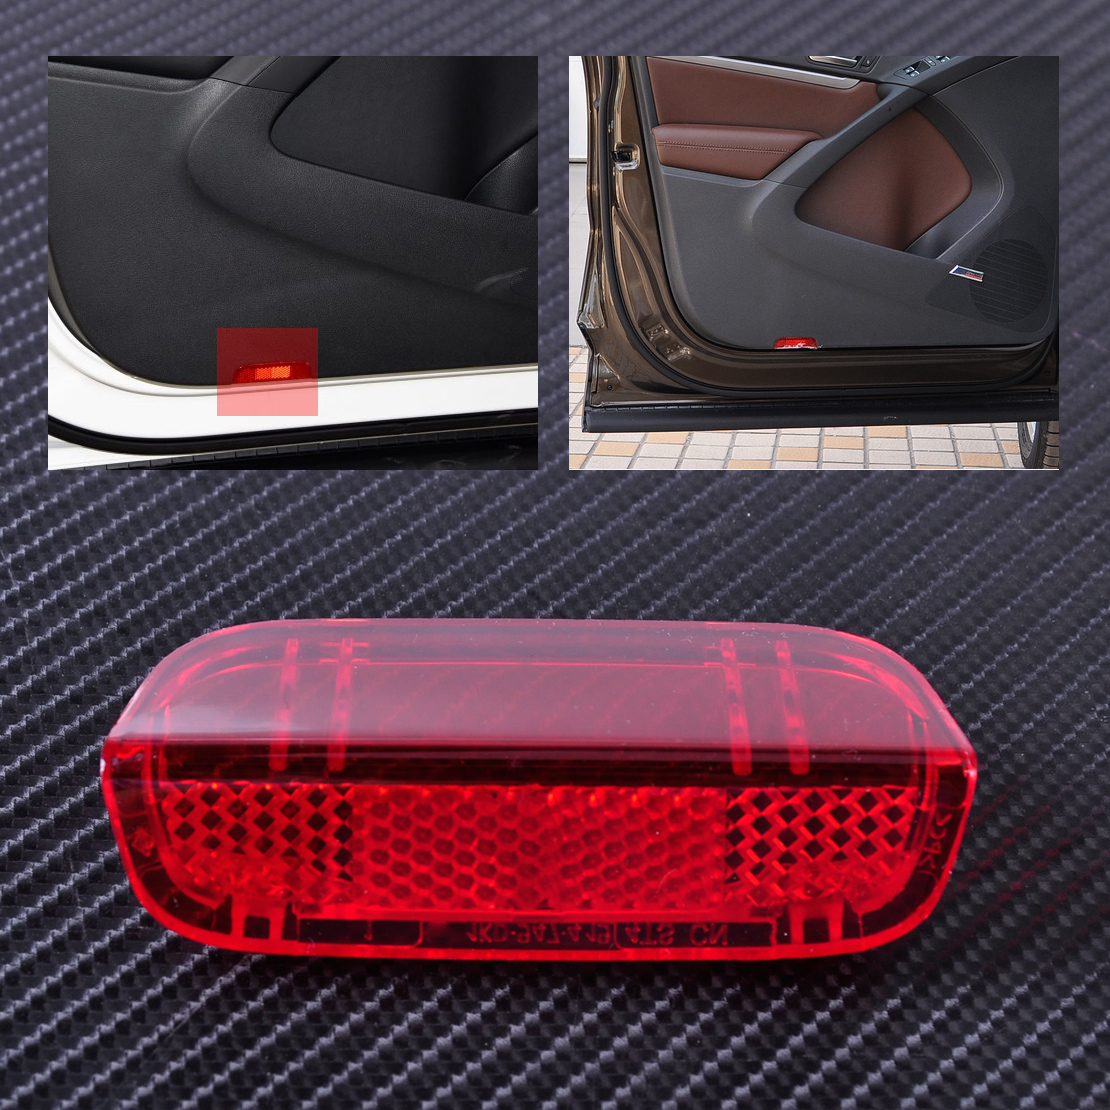 6r All Model Years Gt 20032004 Zx6r Anyone Wired In Remote Start Citall Plastic Red Door Panel Light Lense Reflector Fit For Vw Passat B6 B7 Cc Jetta Mk5 Golf Mk6 1kd 947 419 1k0947419a